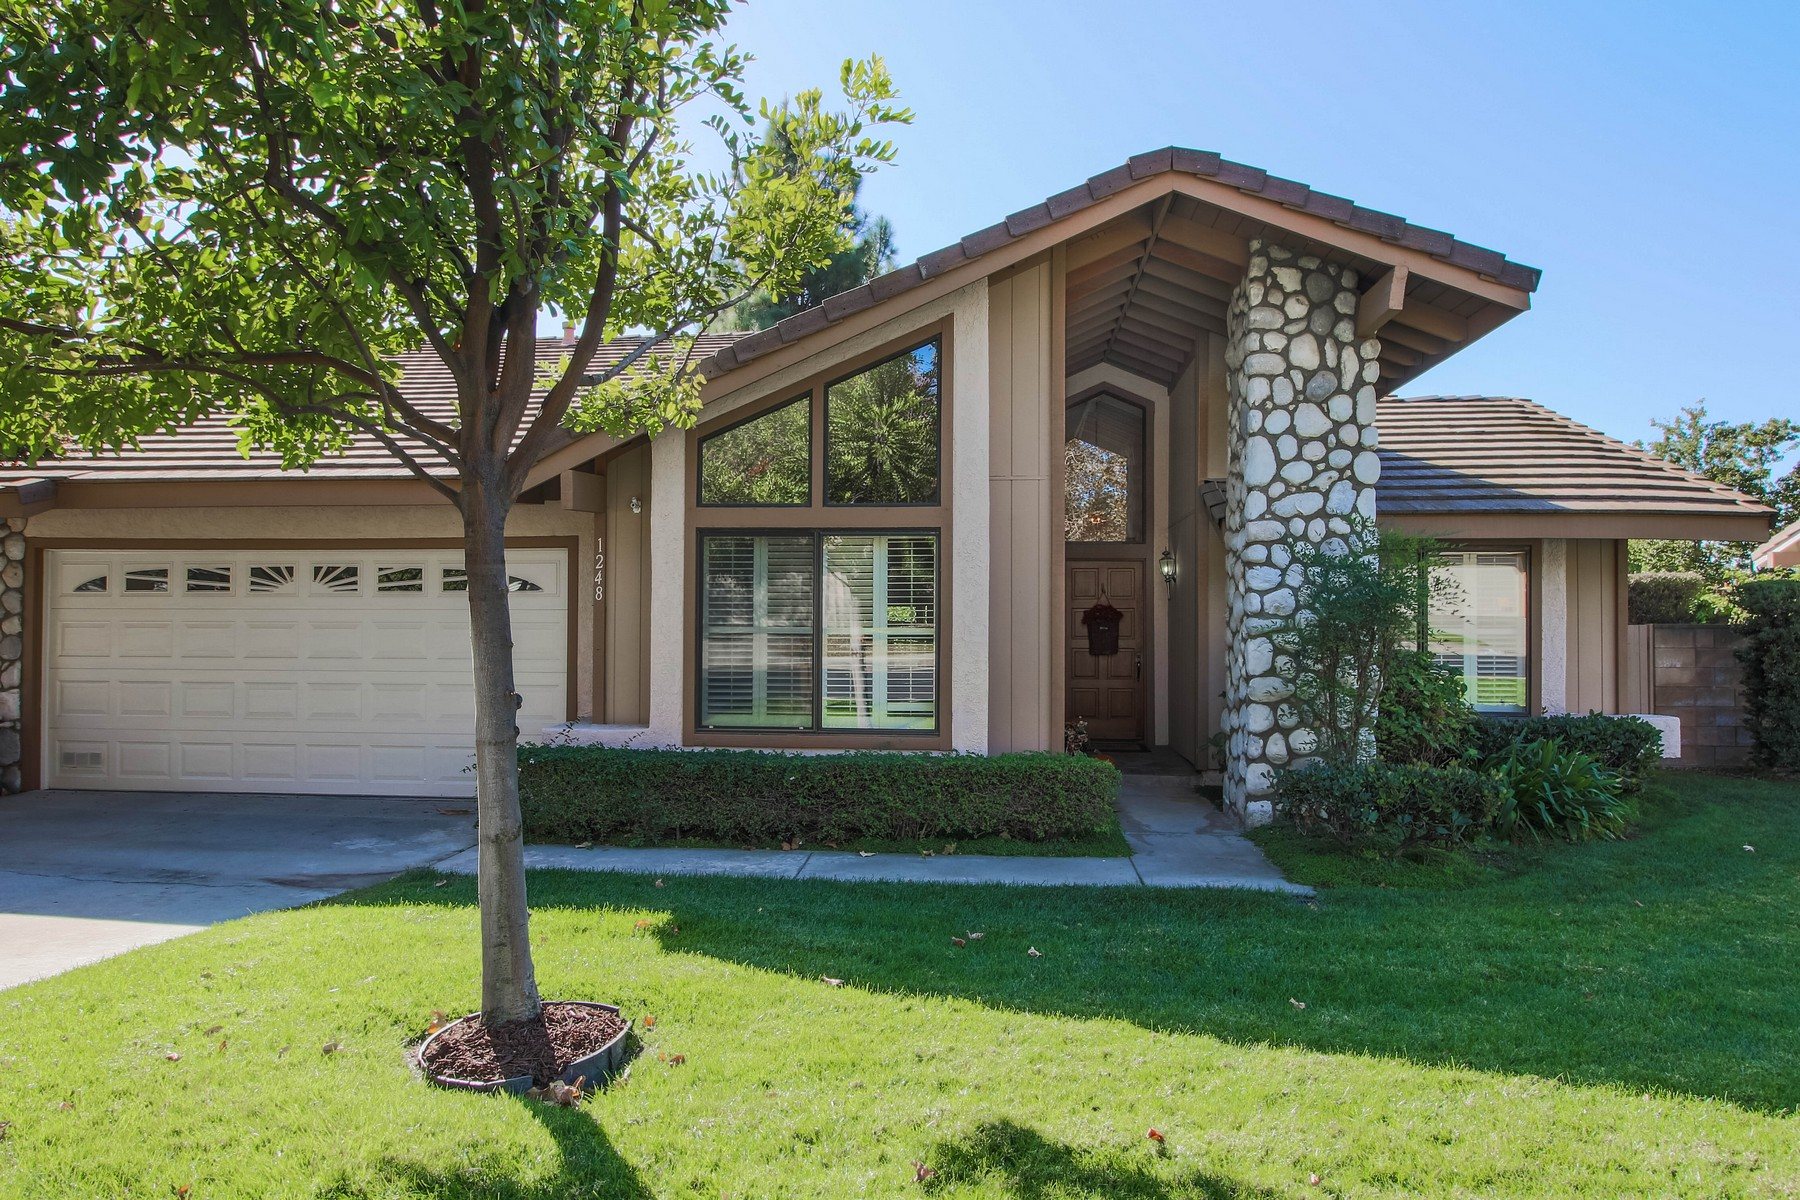 Single Family Homes for Sale at 1248 Chestnut Street, Upland, CA 91784 1248 Chestnut Street Upland, California 91784 United States